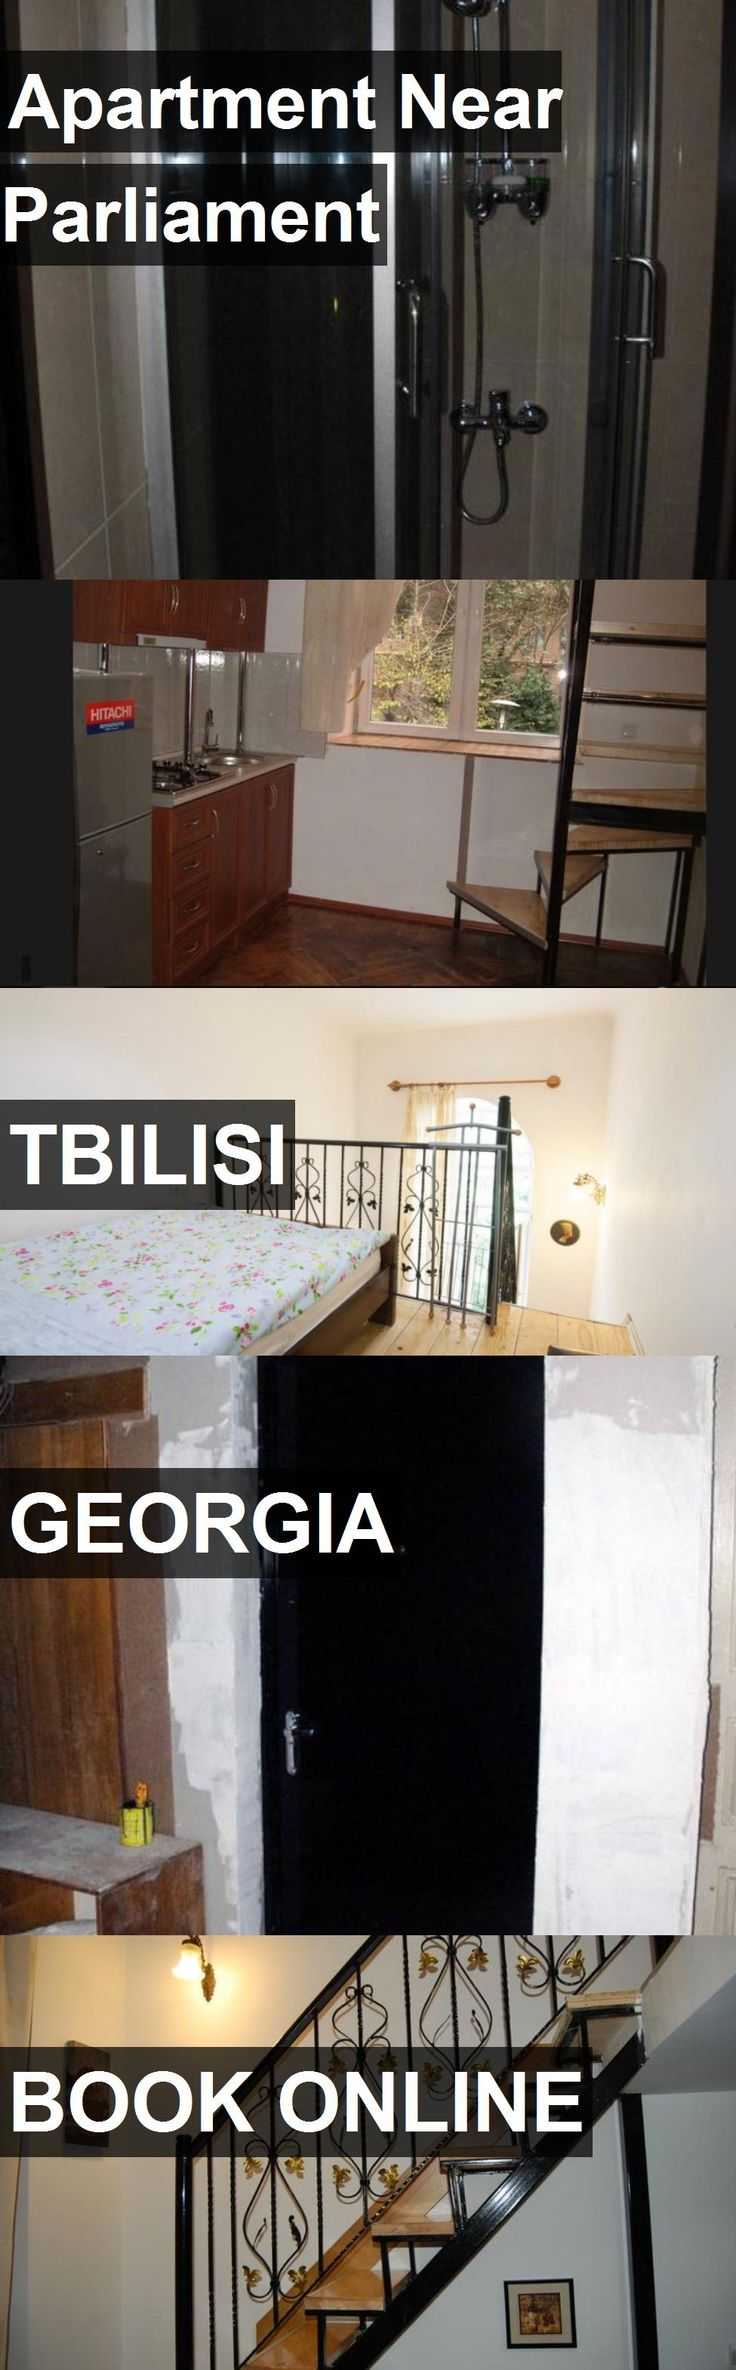 Hotel Apartment Near Parliament in Tbilisi, Georgia. For more information, photos, reviews and best prices please follow the link. #Georgia #Tbilisi #ApartmentNearParliament #hotel #travel #vacation